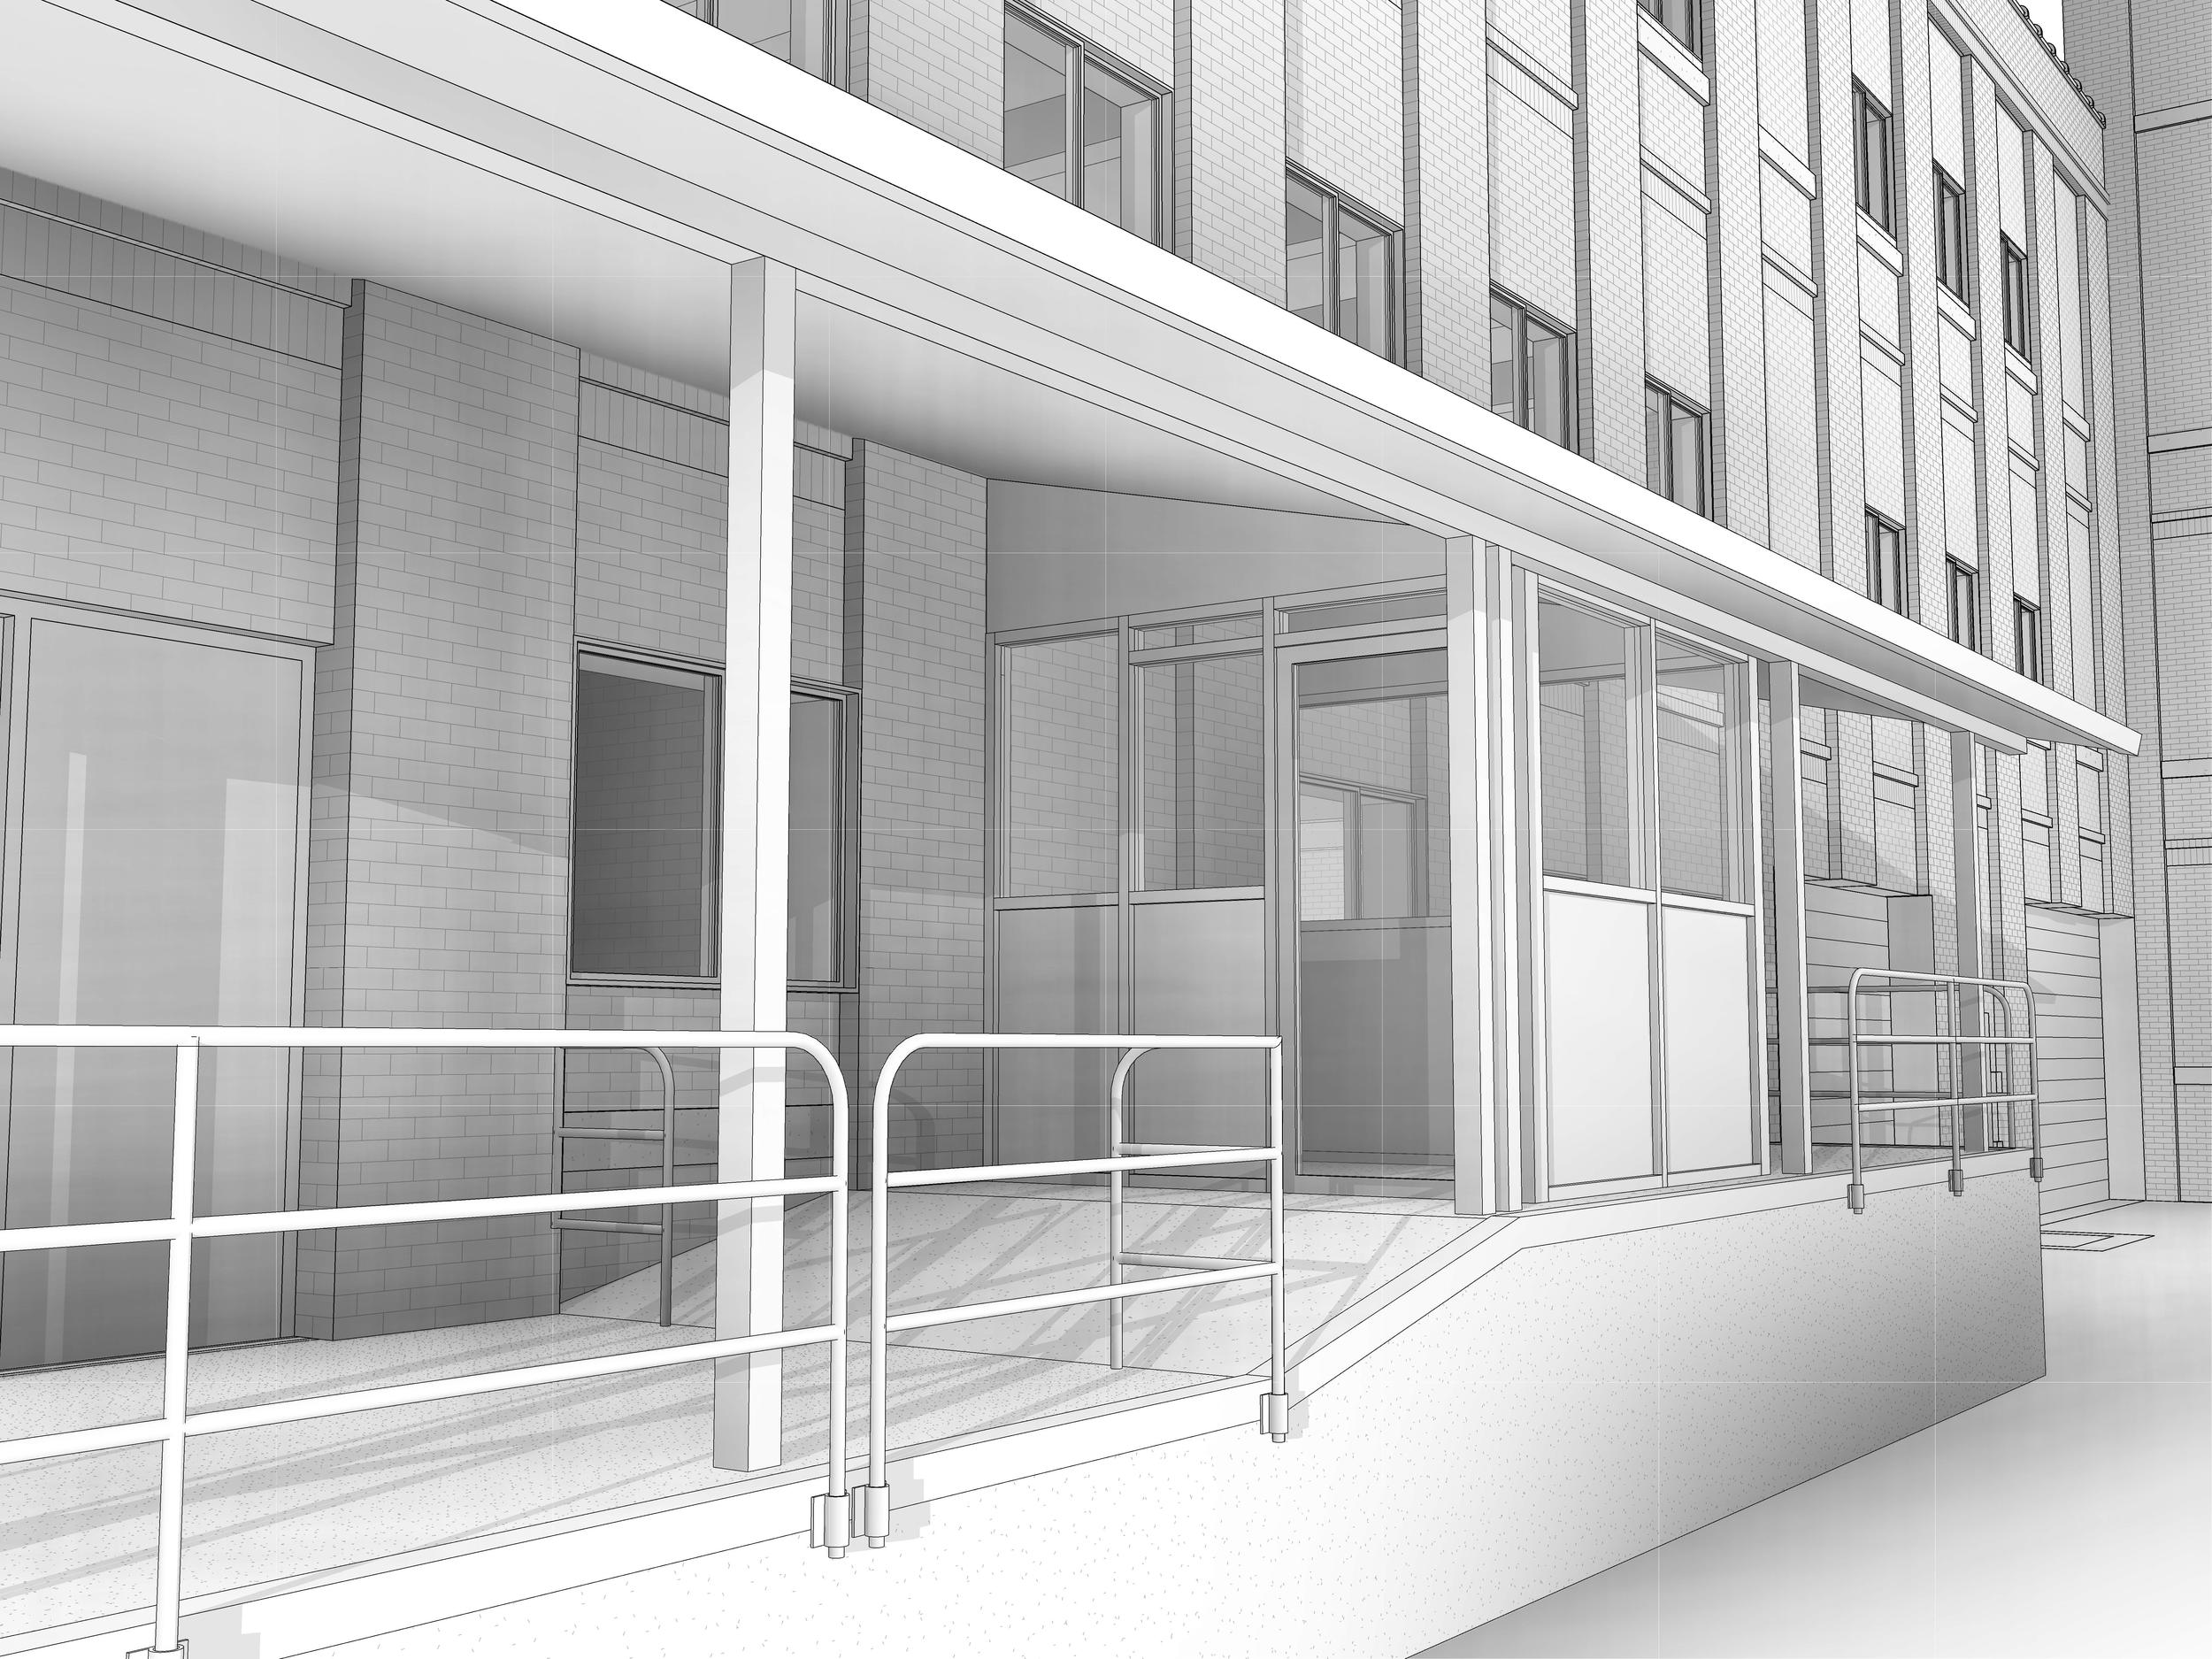 Office Factory - 3D View - Copy of Copy (2) of 3D View 4.jpg